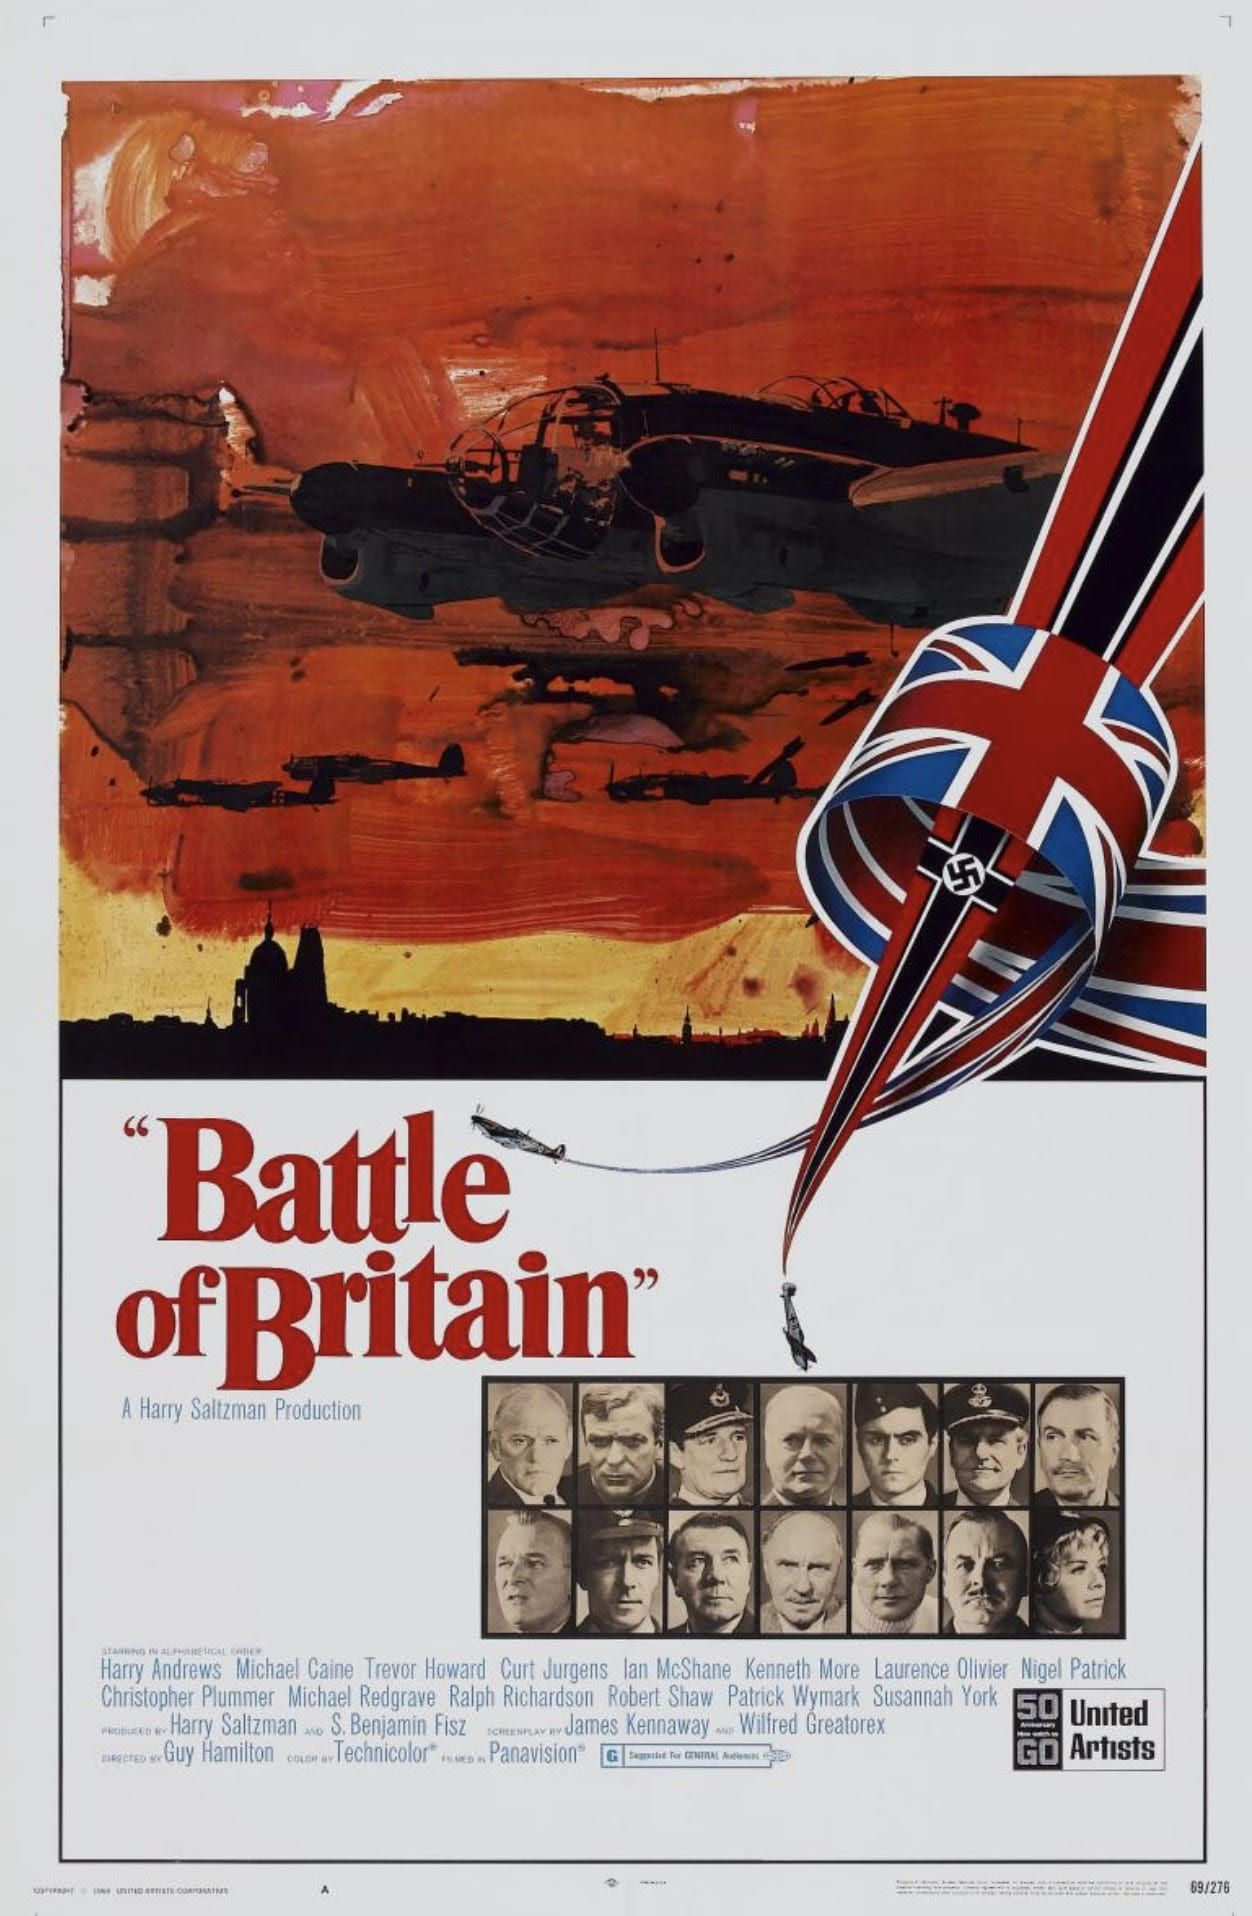 Must-watch films, ahead of Battle of Britain anniversary